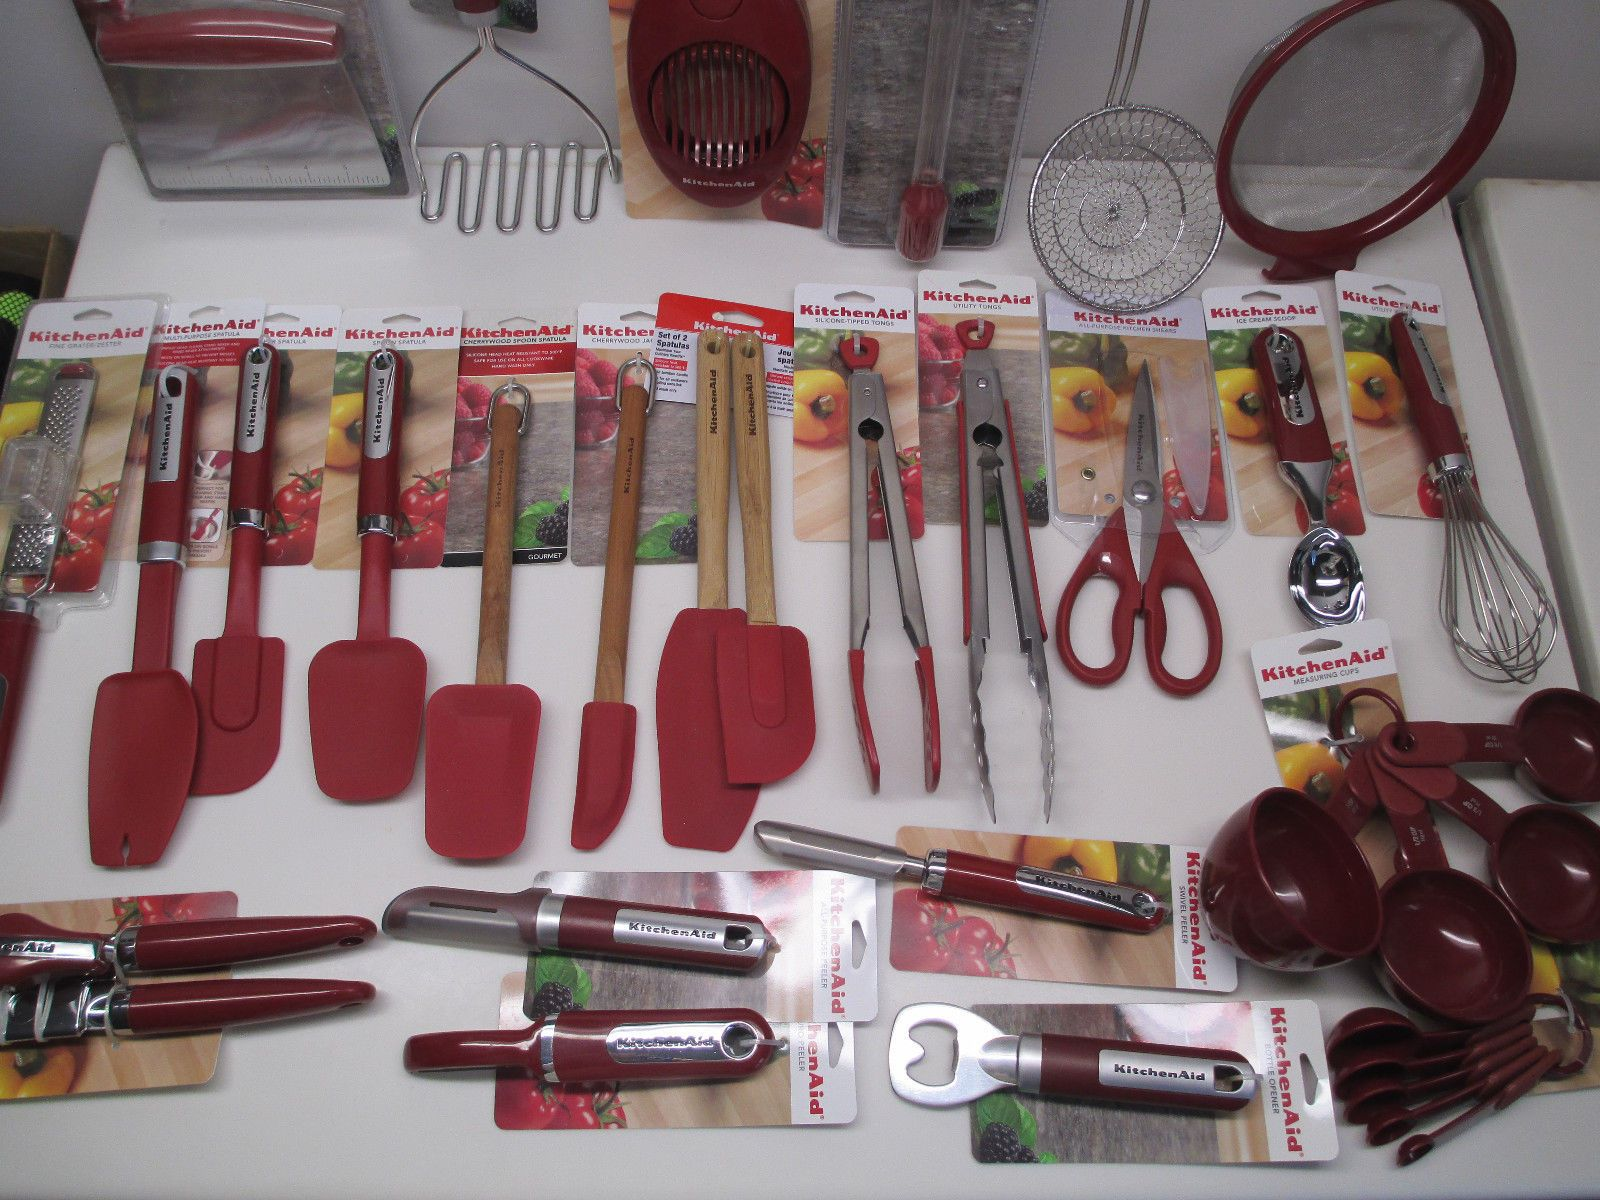 Details about kitchenaid empire red cooking utensils